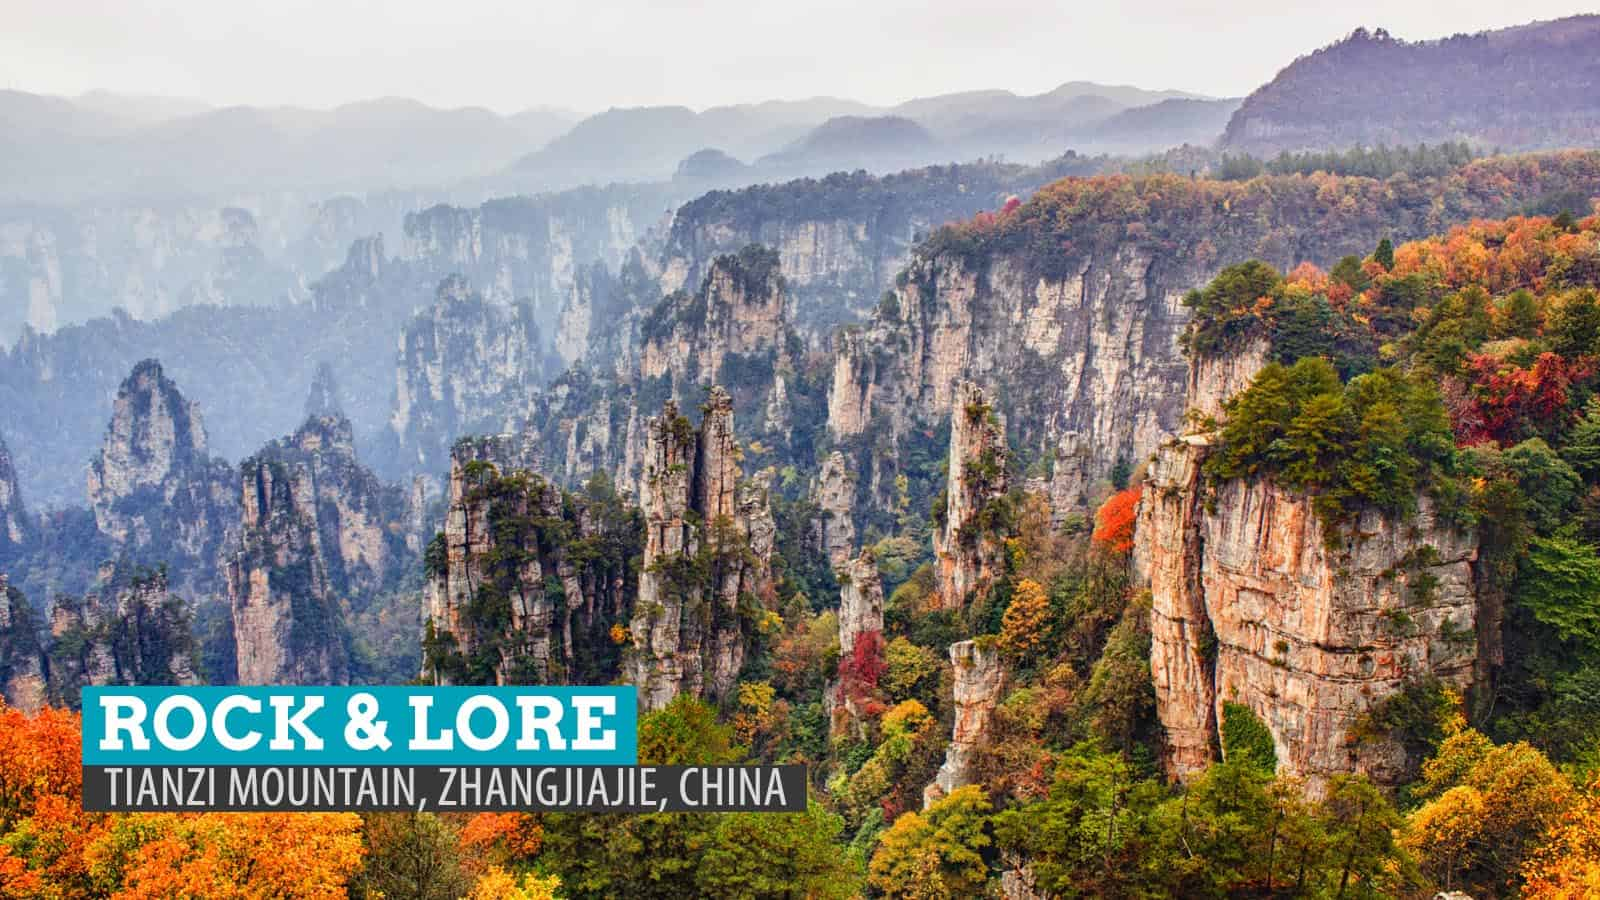 Tianzi Mountain: Rock and Lore in Zhangjiajie, China